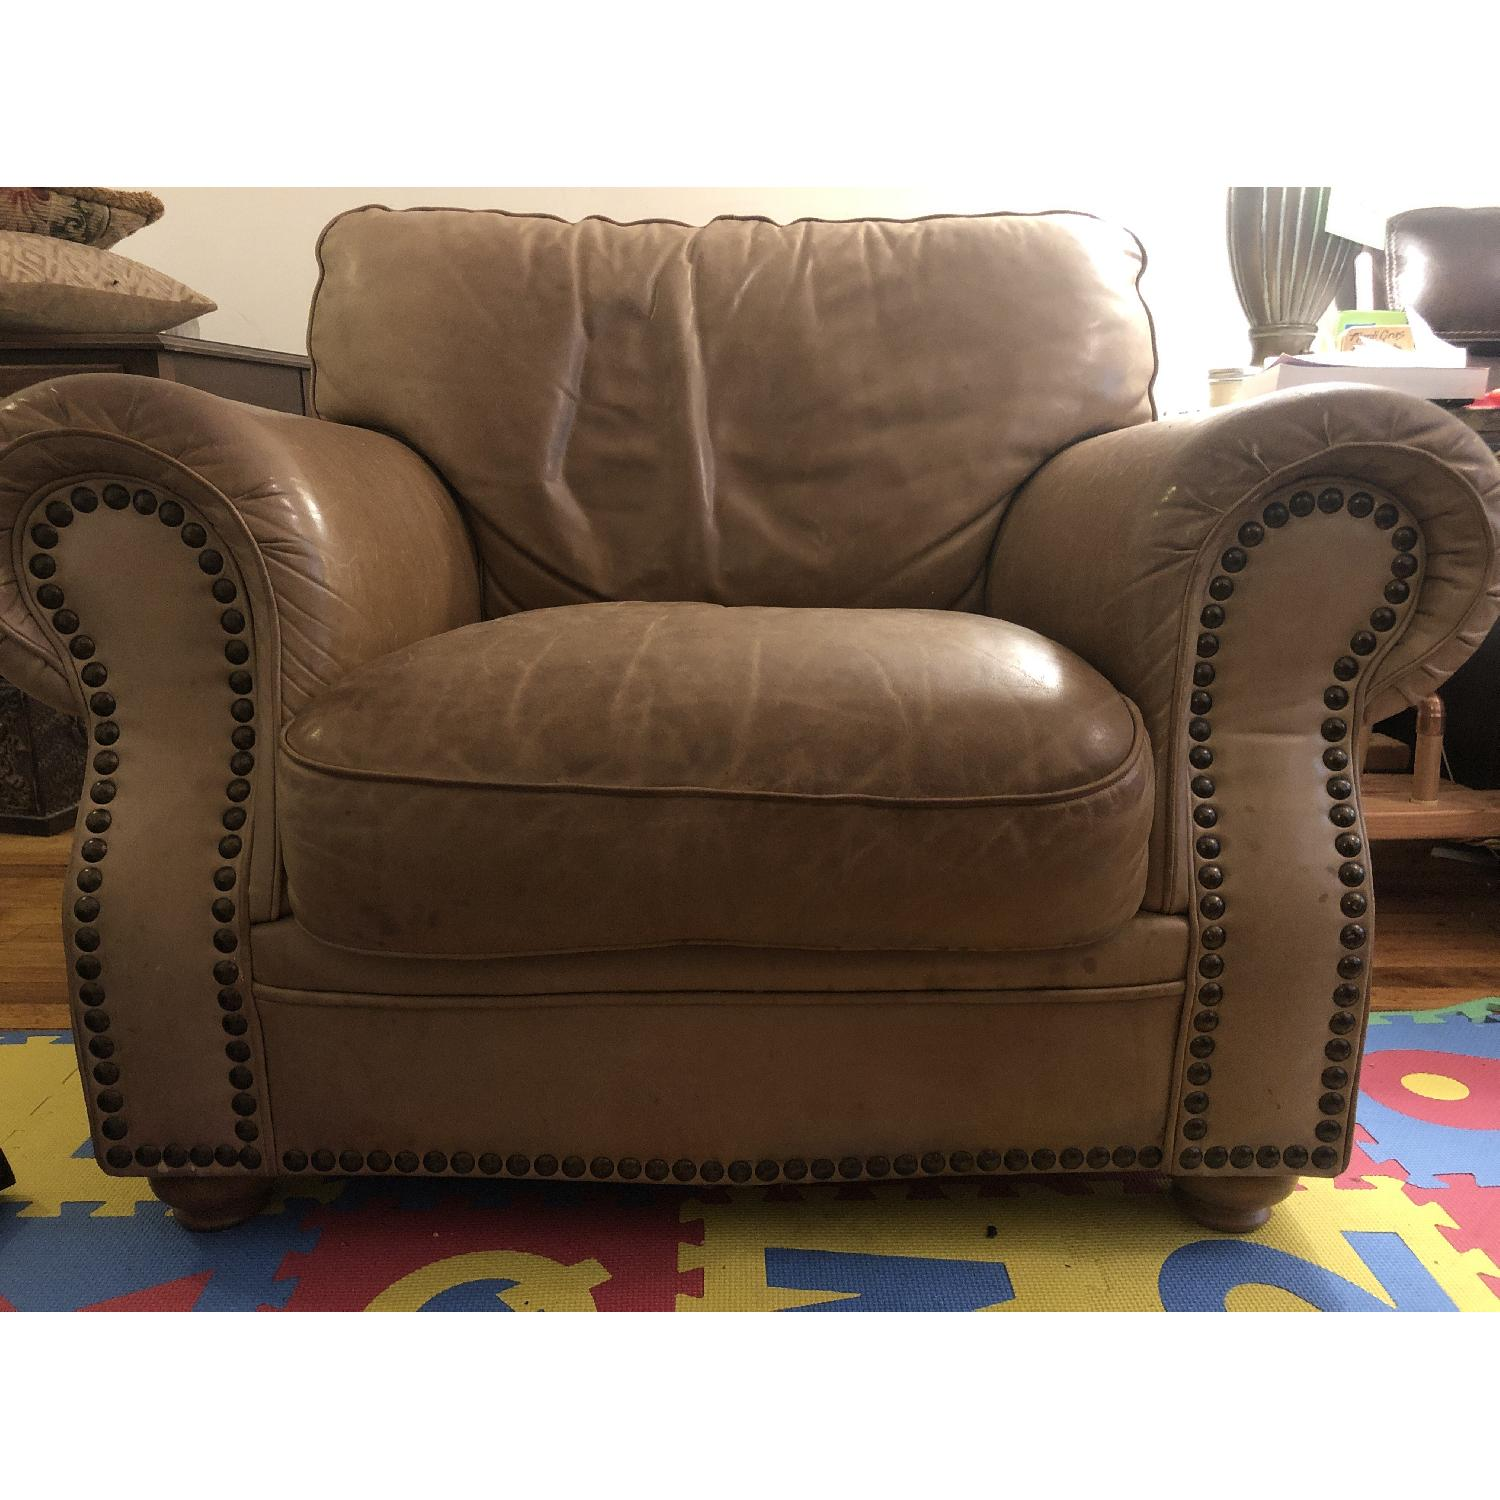 Distressed Camel Leather Studded Oversized Chair - image-2